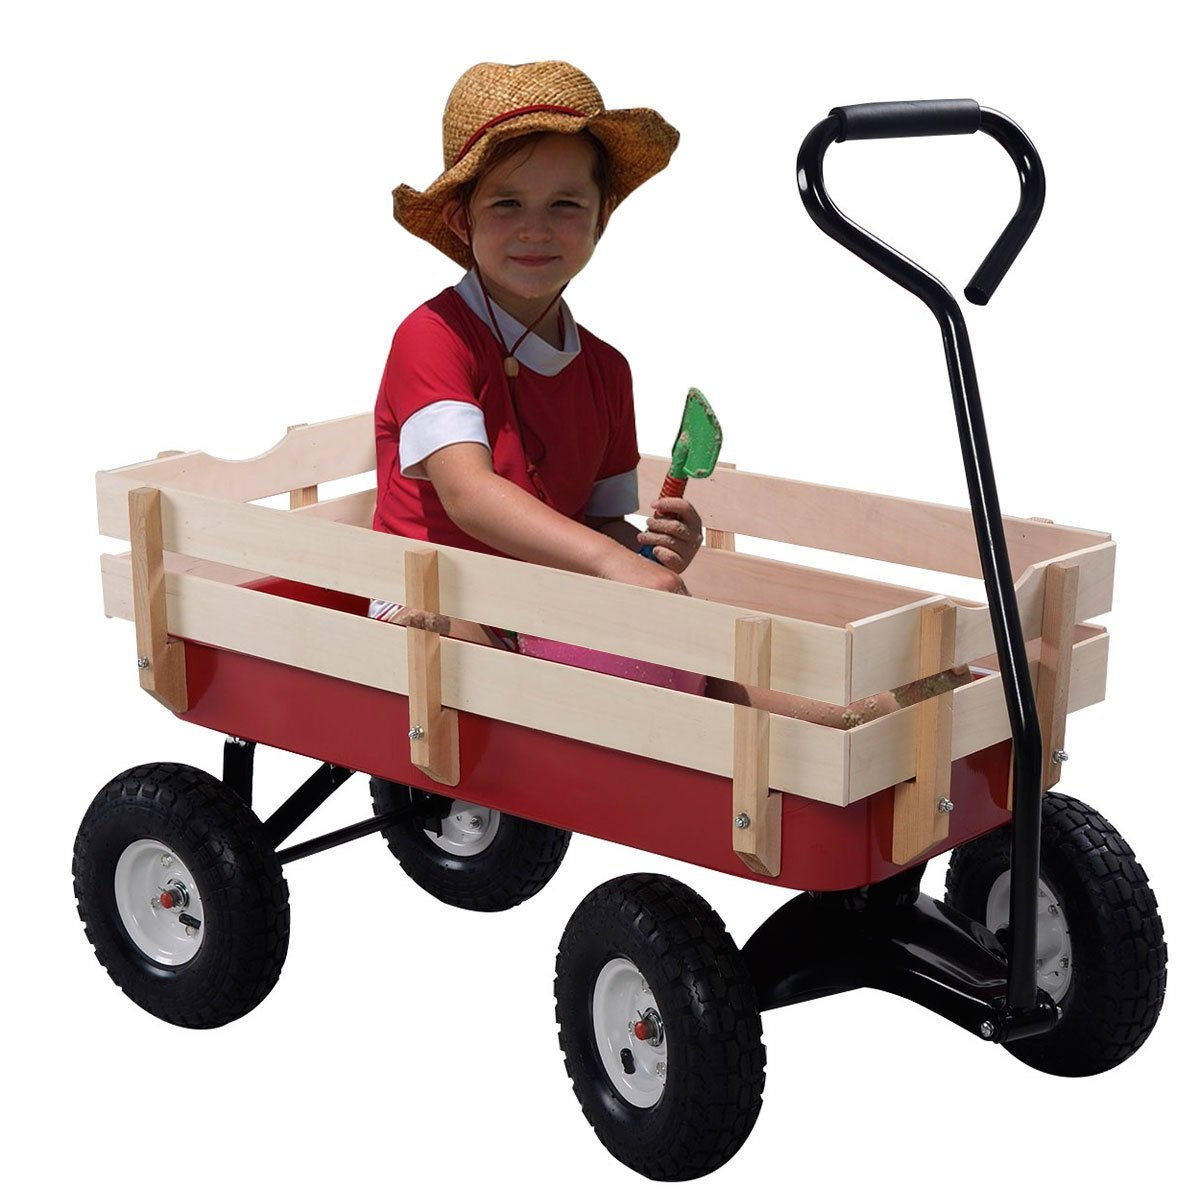 thaisan7 Kid Children Terrain Truck Wagon Garden Cart Realistic Pulling,Ride Toy,for relax and tuck in home, brain development and creativity, w/Wood Railing Red